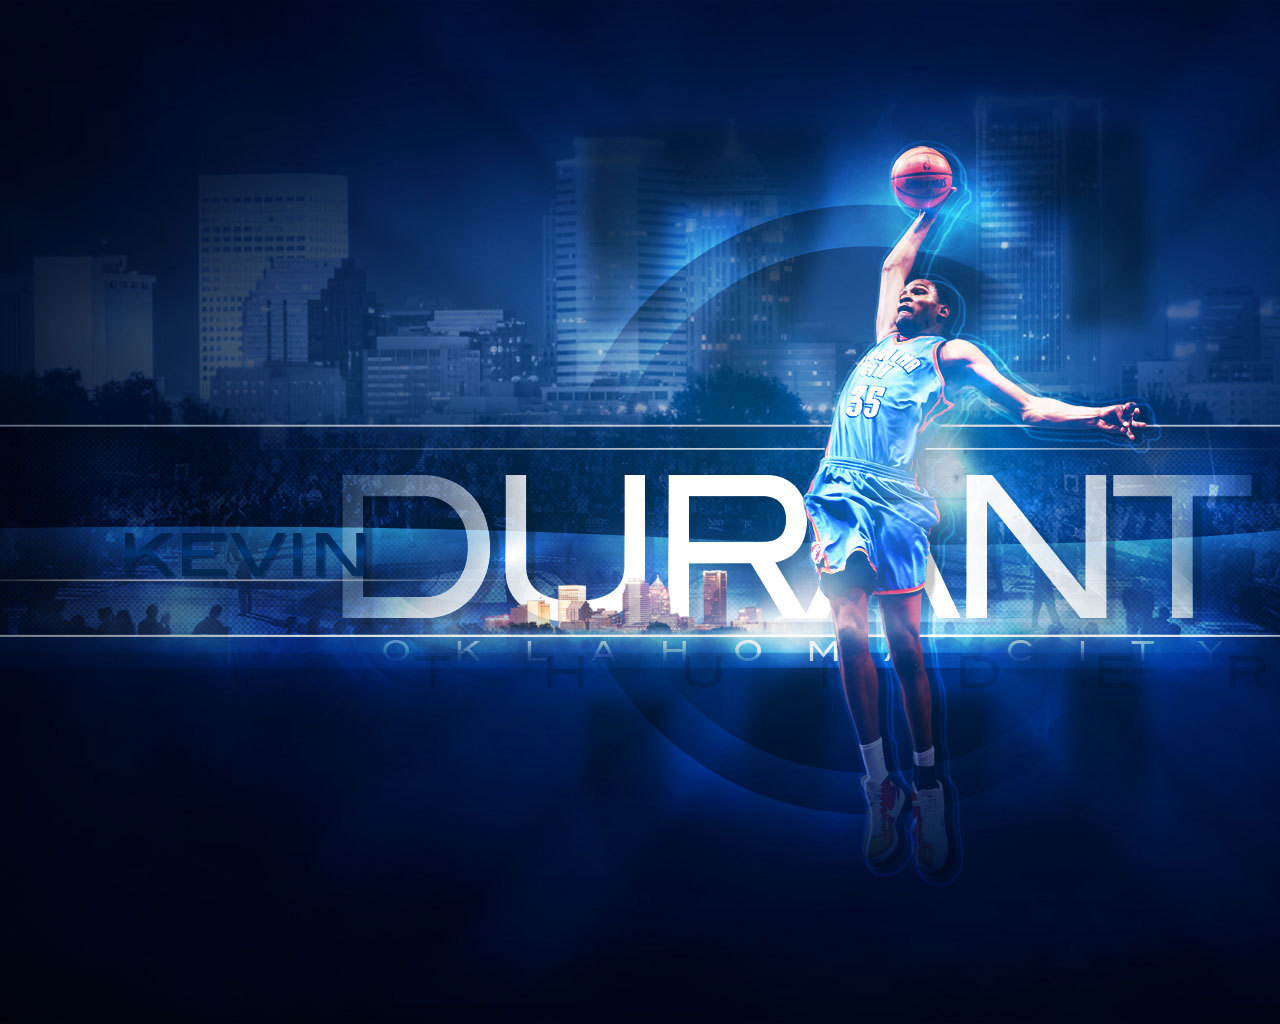 Kevin Durant Nice Backgrounds